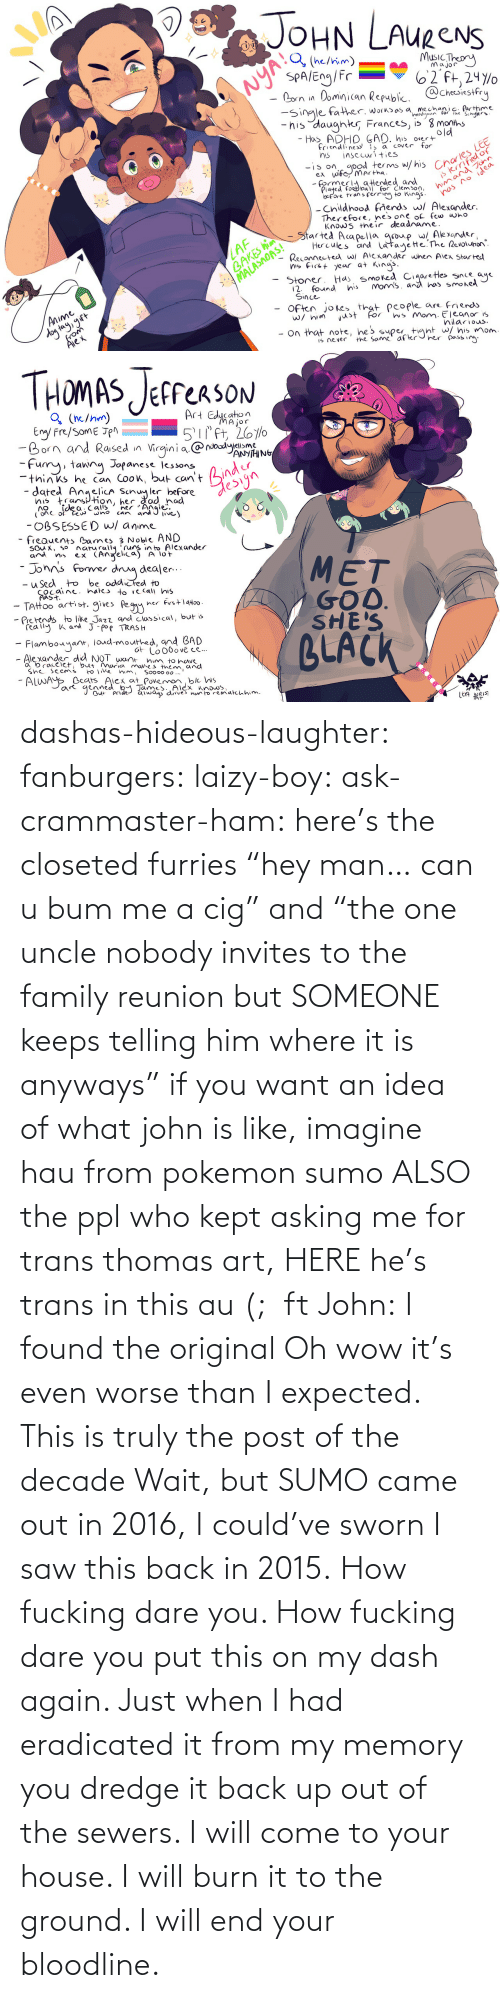 "the family: dashas-hideous-laughter:  fanburgers:   laizy-boy:   ask-crammaster-ham:   here's the closeted furries ""hey man… can u bum me a cig"" and ""the one uncle nobody invites to the family reunion but SOMEONE keeps telling him where it is anyways""   if you want an idea of what john is like, imagine hau from pokemon sumo ALSO the ppl who kept asking me for trans thomas art, HERE he's trans in this au (;  ft John:    I found the original     Oh wow it's even worse than I expected. This is truly the post of the decade    Wait, but SUMO came out in 2016, I could've sworn I saw this back in 2015.    How fucking dare you. How fucking dare you put this on my dash again. Just when I had eradicated it from my memory you dredge it back up out of the sewers. I will come to your house. I will burn it to the ground. I will end your bloodline."